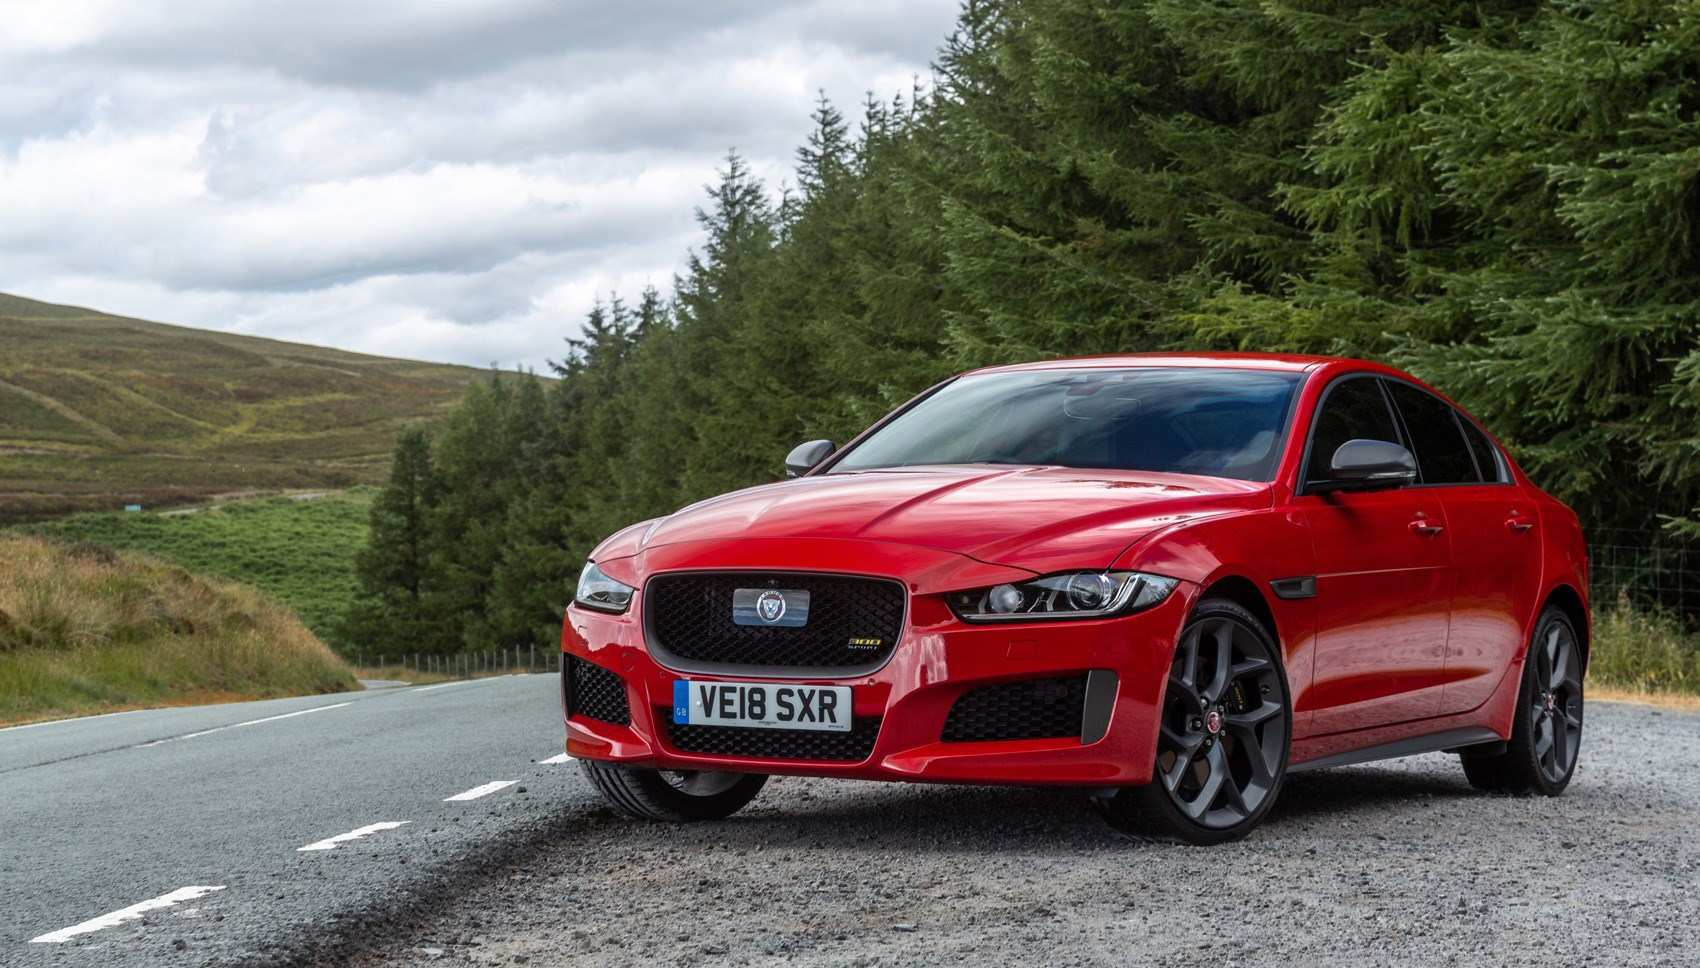 54 The Best Jaguar Xe 2020 Review Configurations